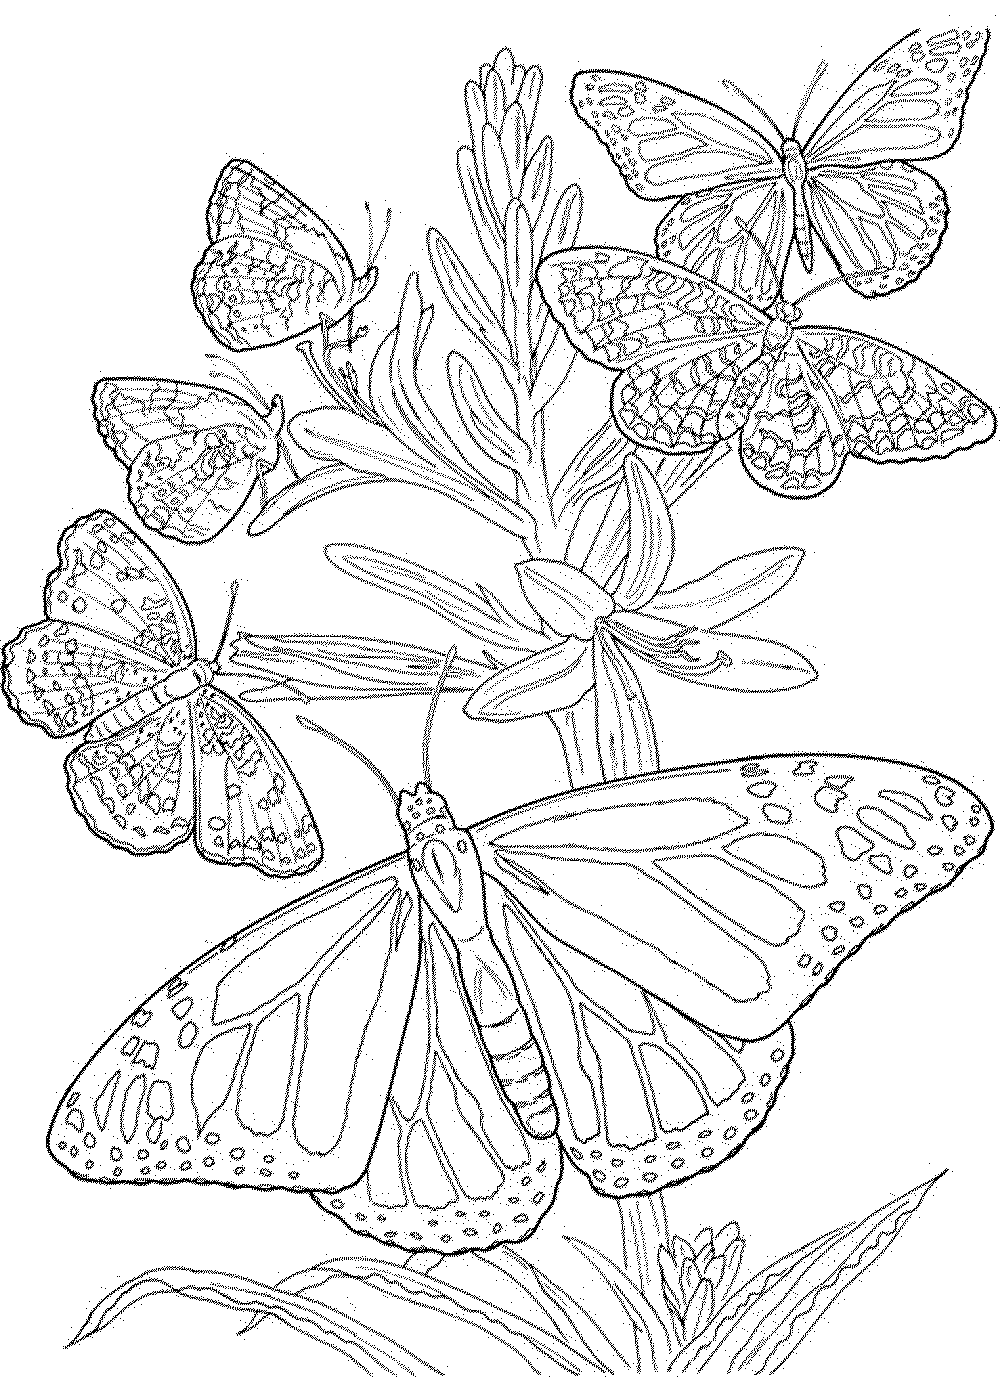 Printable coloring pages for adults flowers - Coloring Book Pages For Adults Printable Kids Colouring Pages